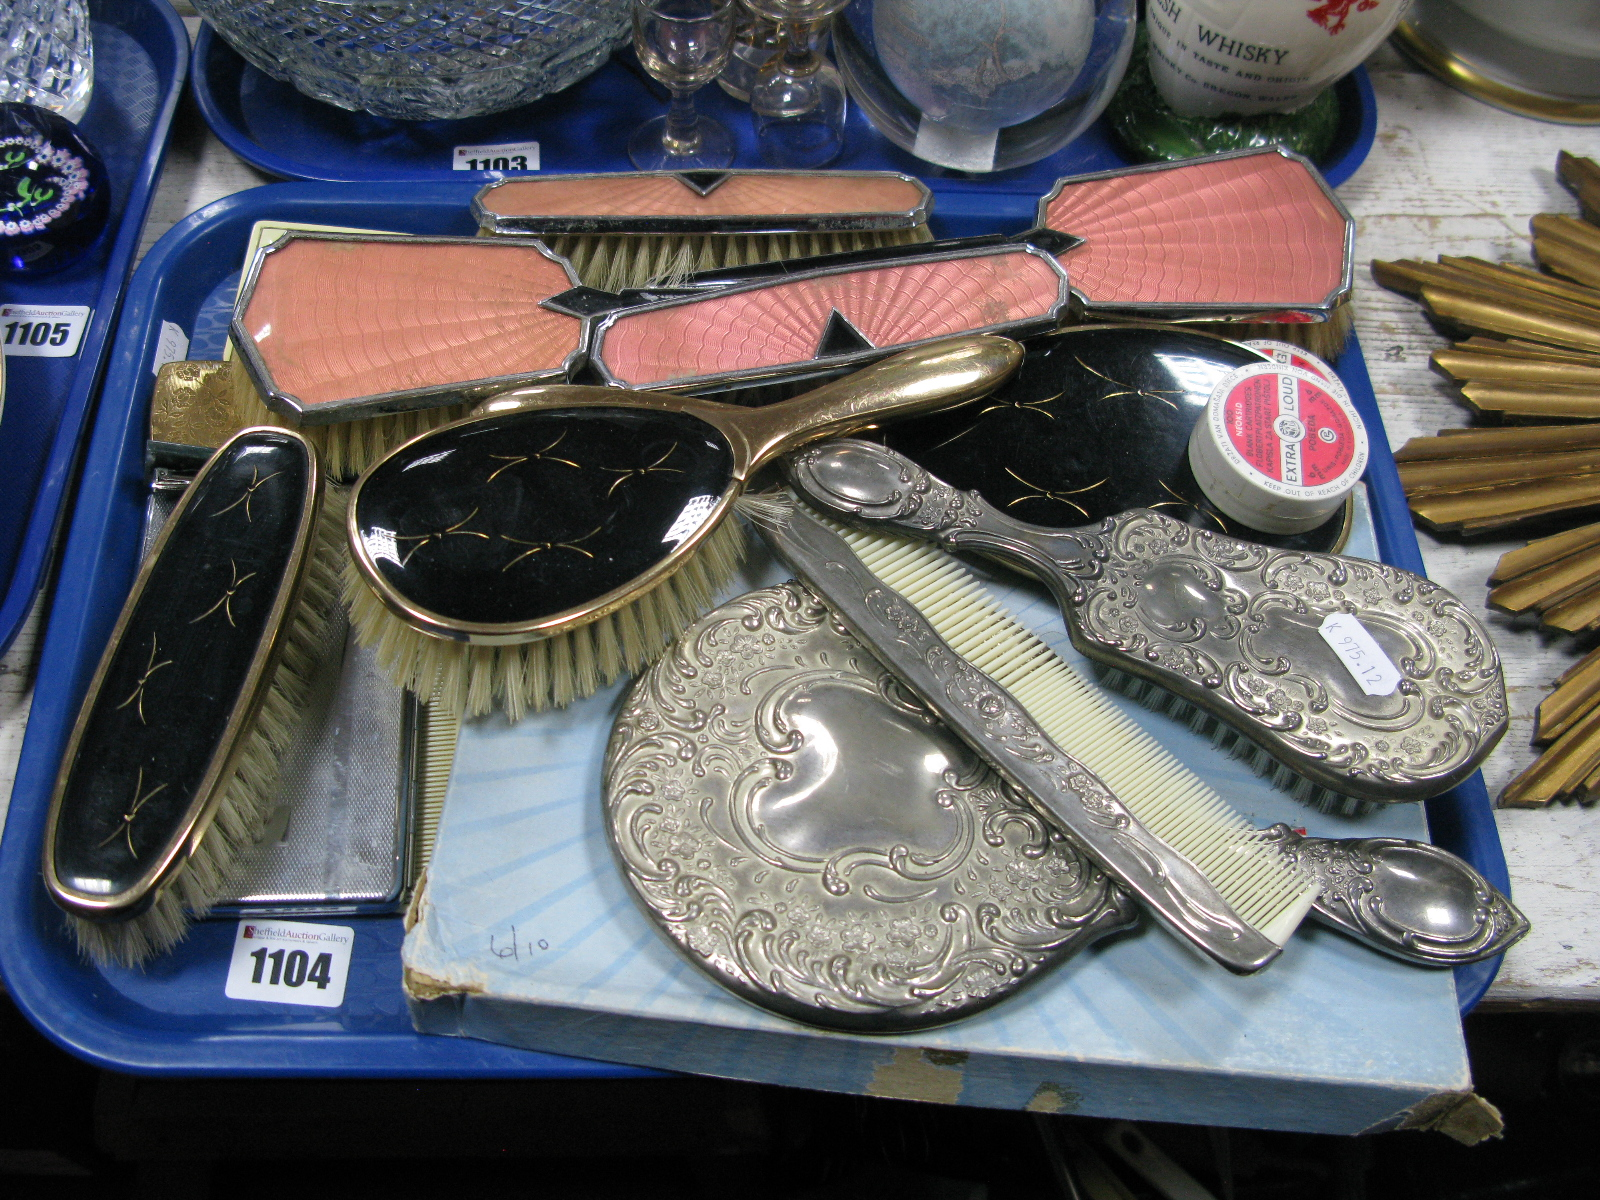 Lot 1104 - Mid XX Century Dressing Table Sets, cigarette case, Dorothy Vernon nylons (boxed), compacts, etc:-